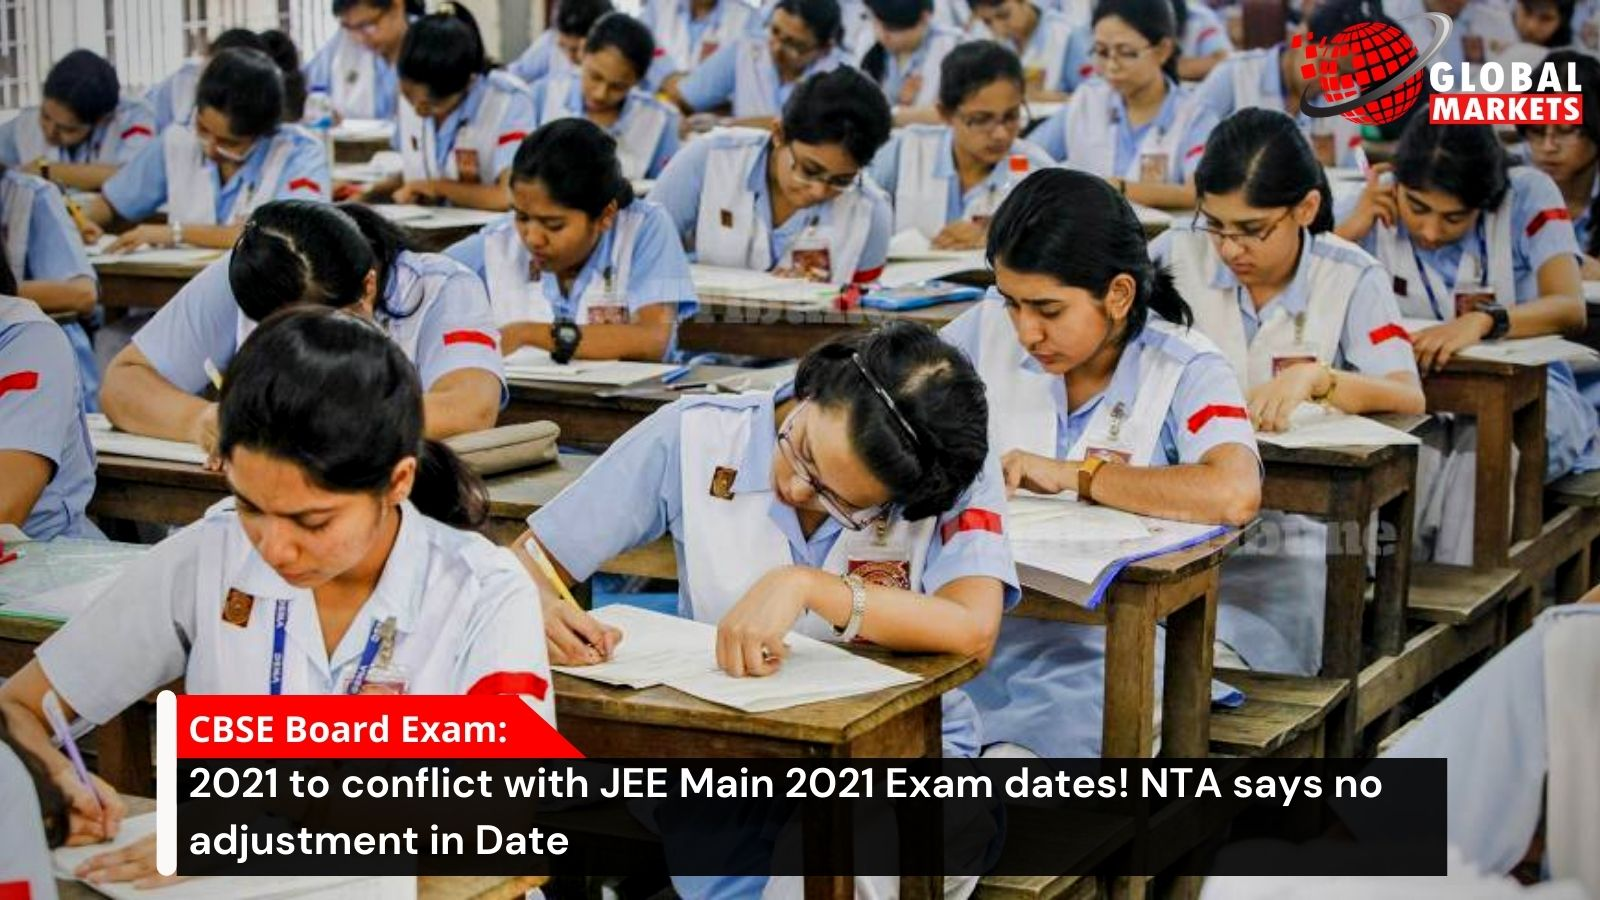 CBSE Board Exam 2021 to conflict with JEE Main 2021 Exam dates! NTA says no adjustment in Date